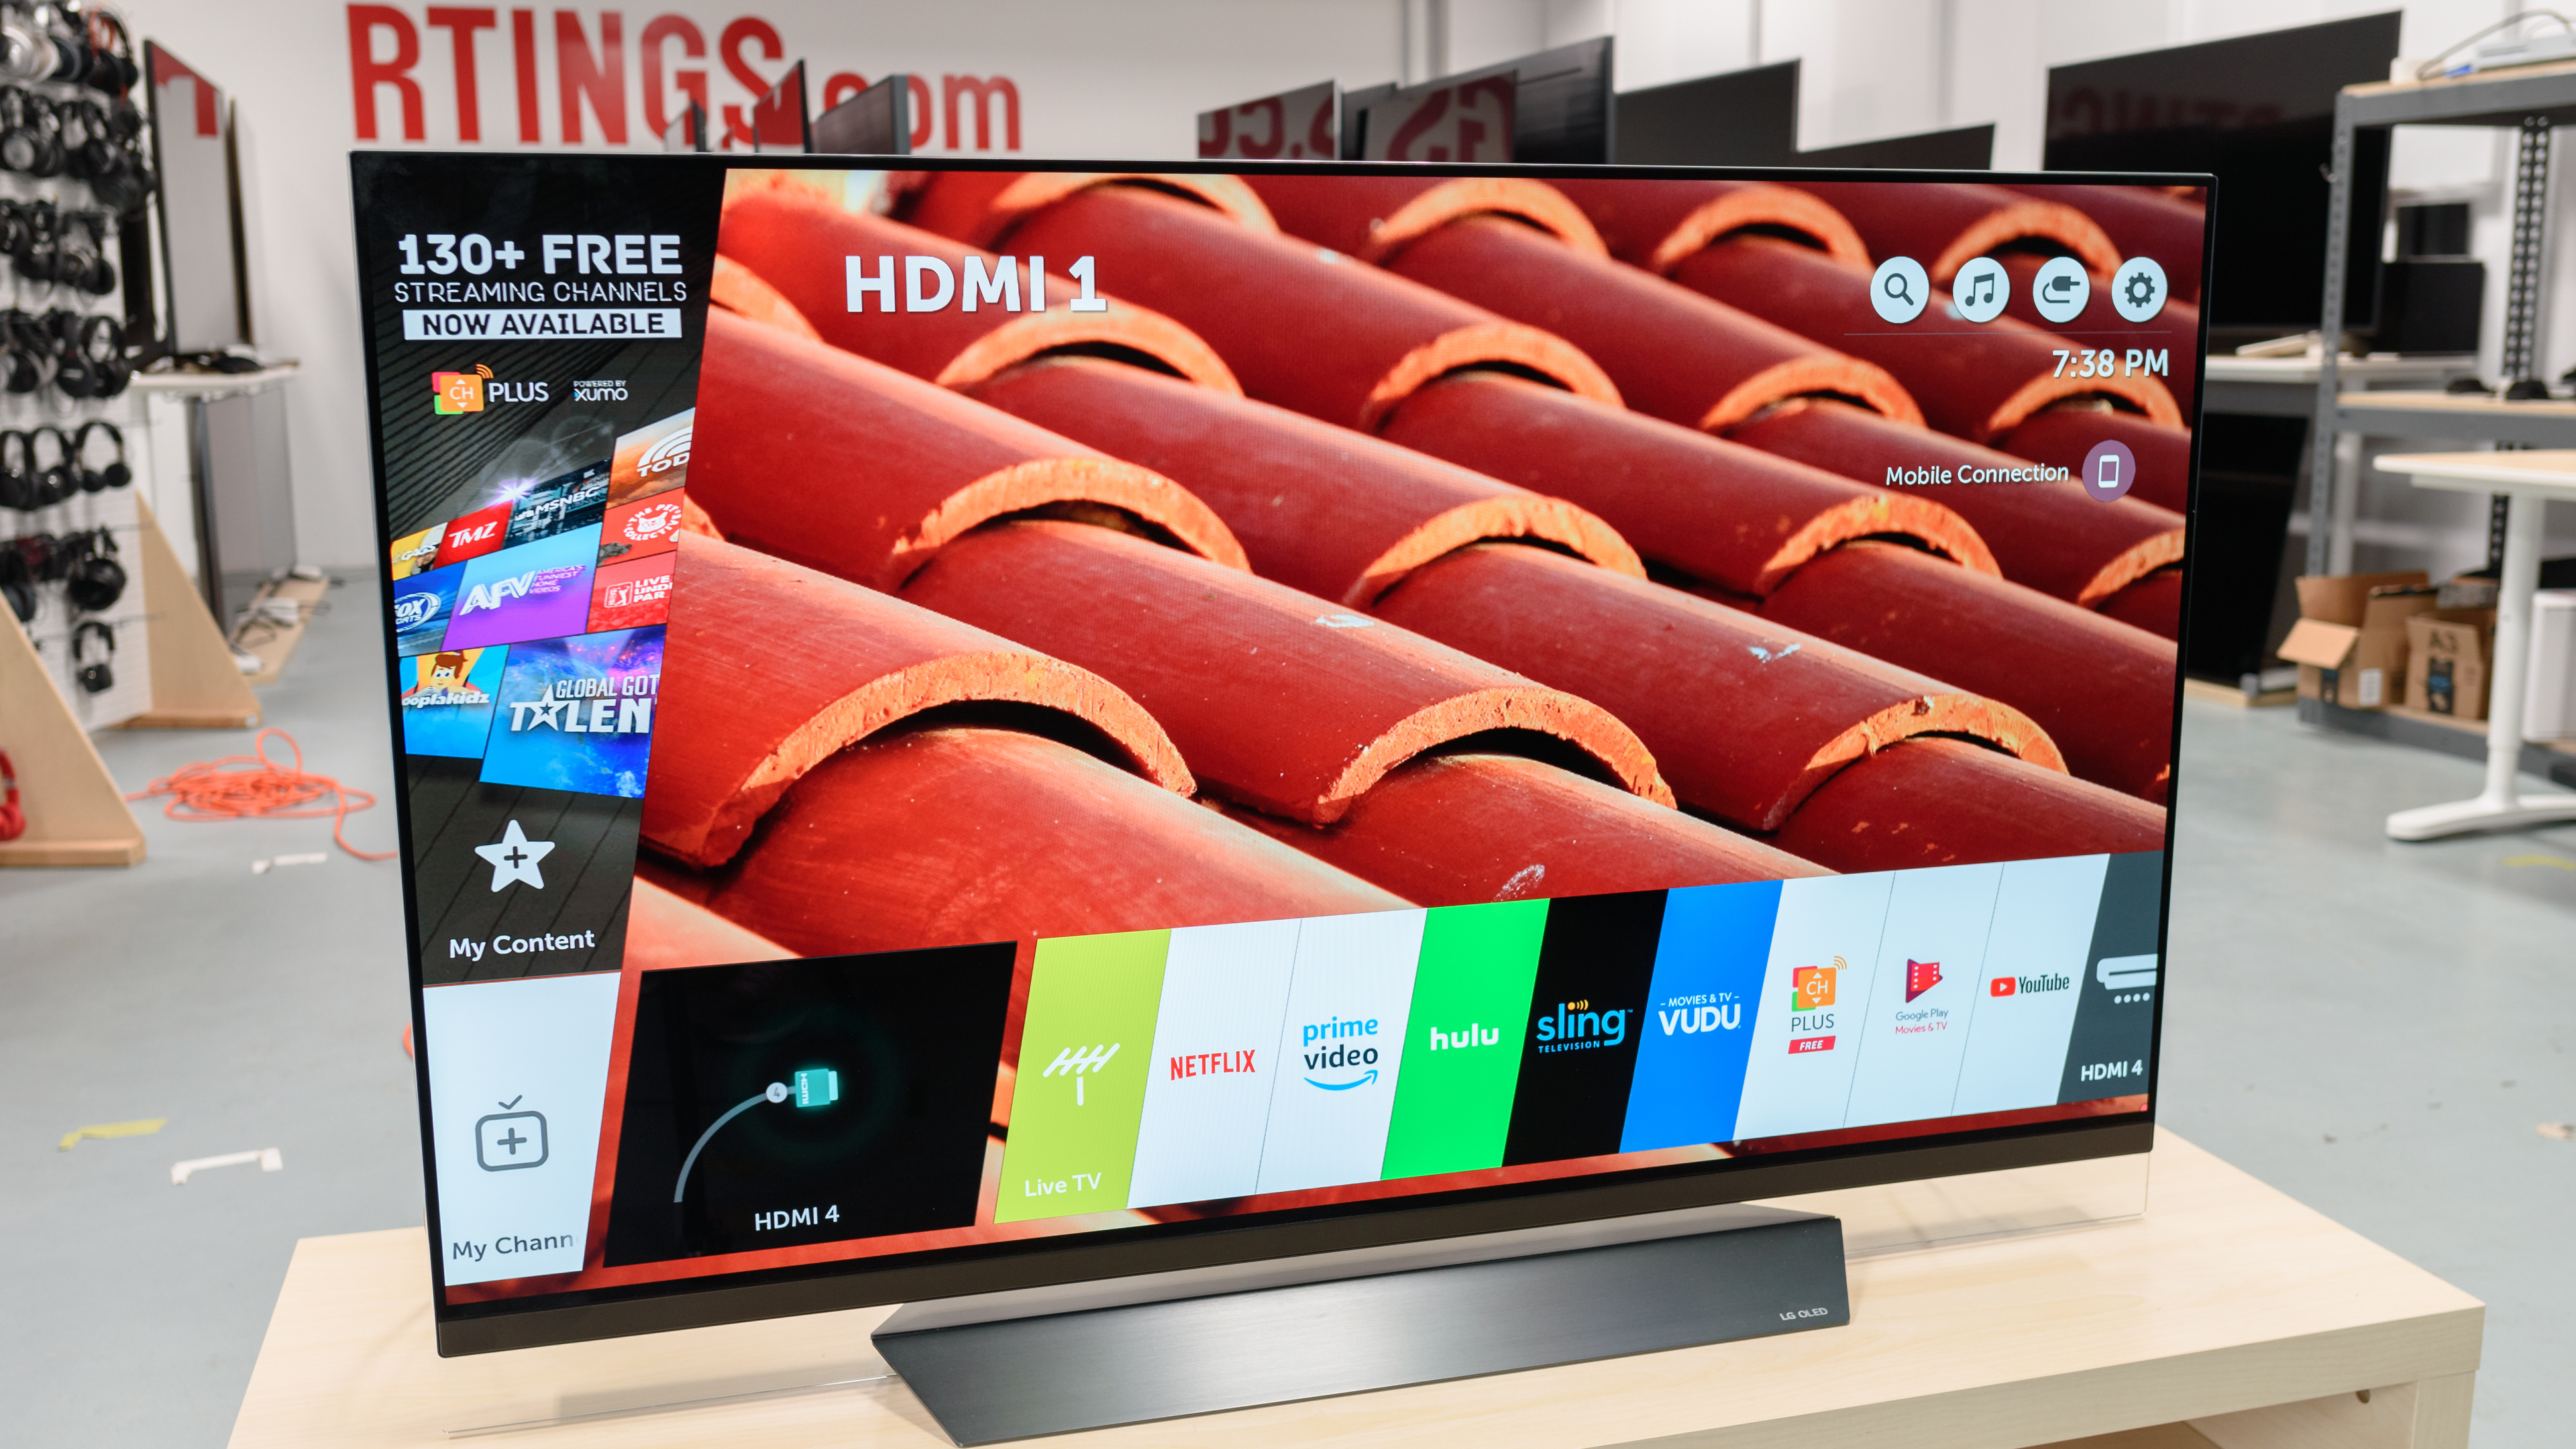 QLED vs OLED vs LED TV: Which one is the best? - RTINGS com